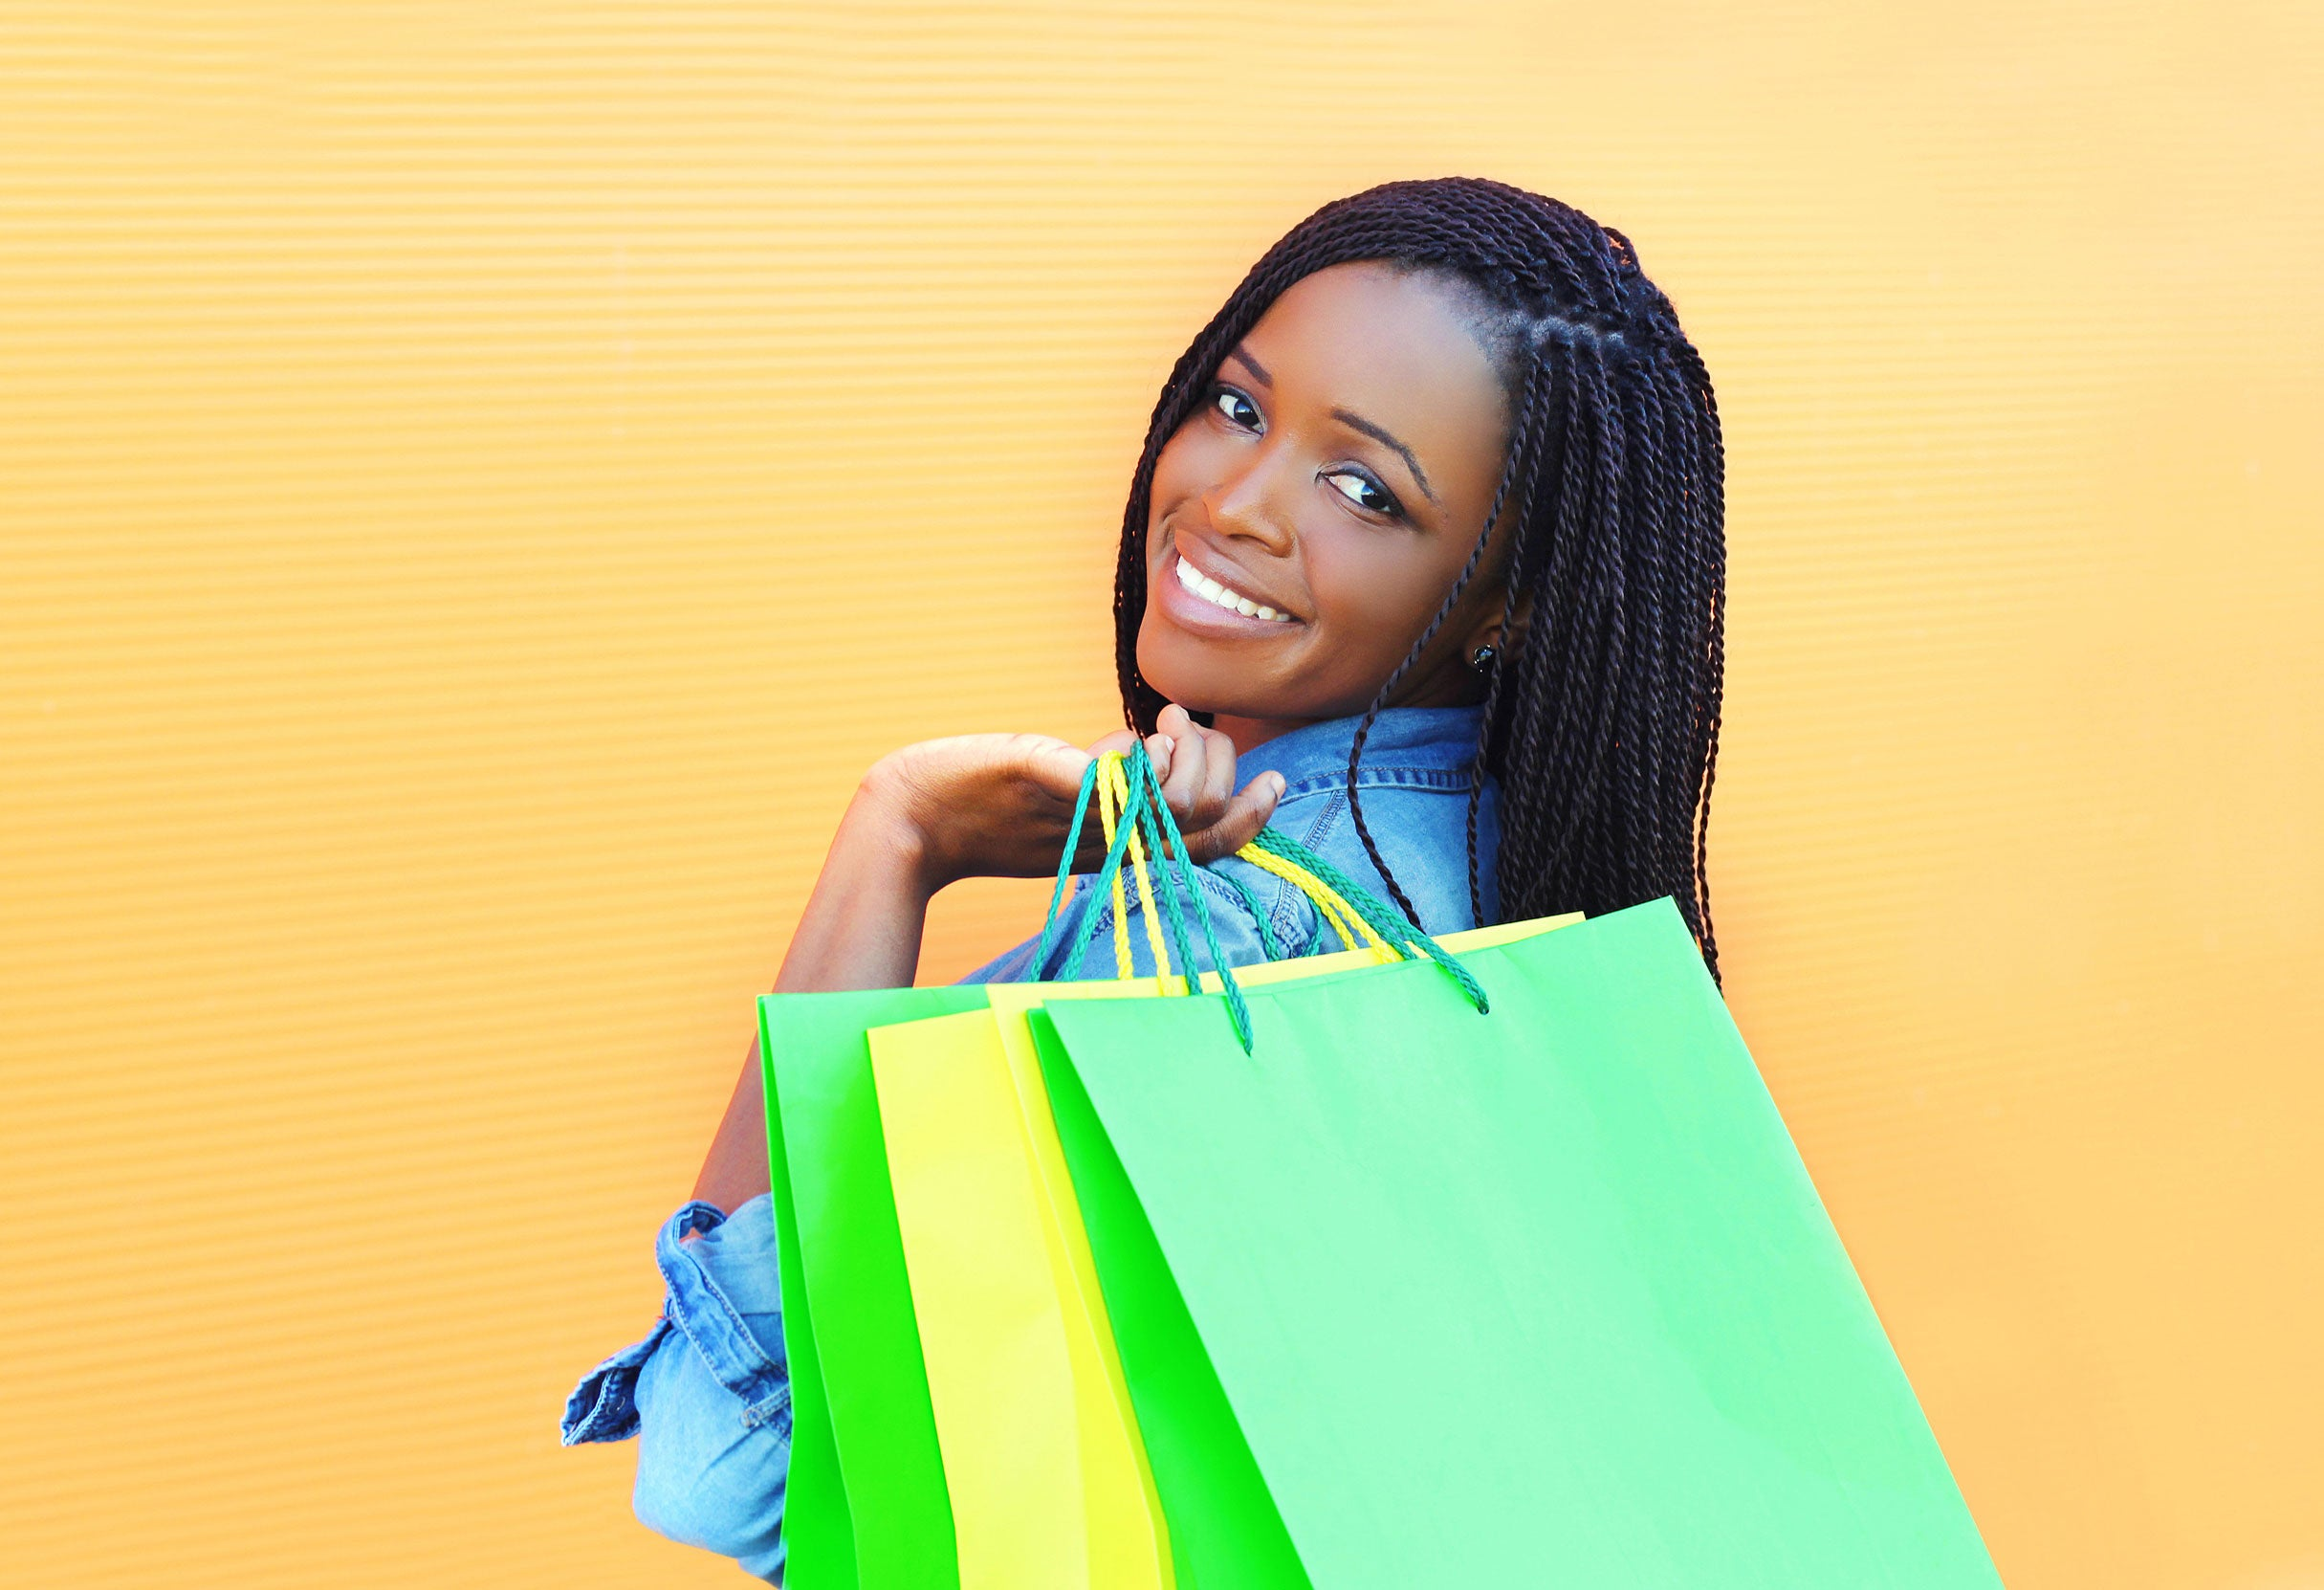 Save Big On Black Friday And Cyber Monday With These Tips